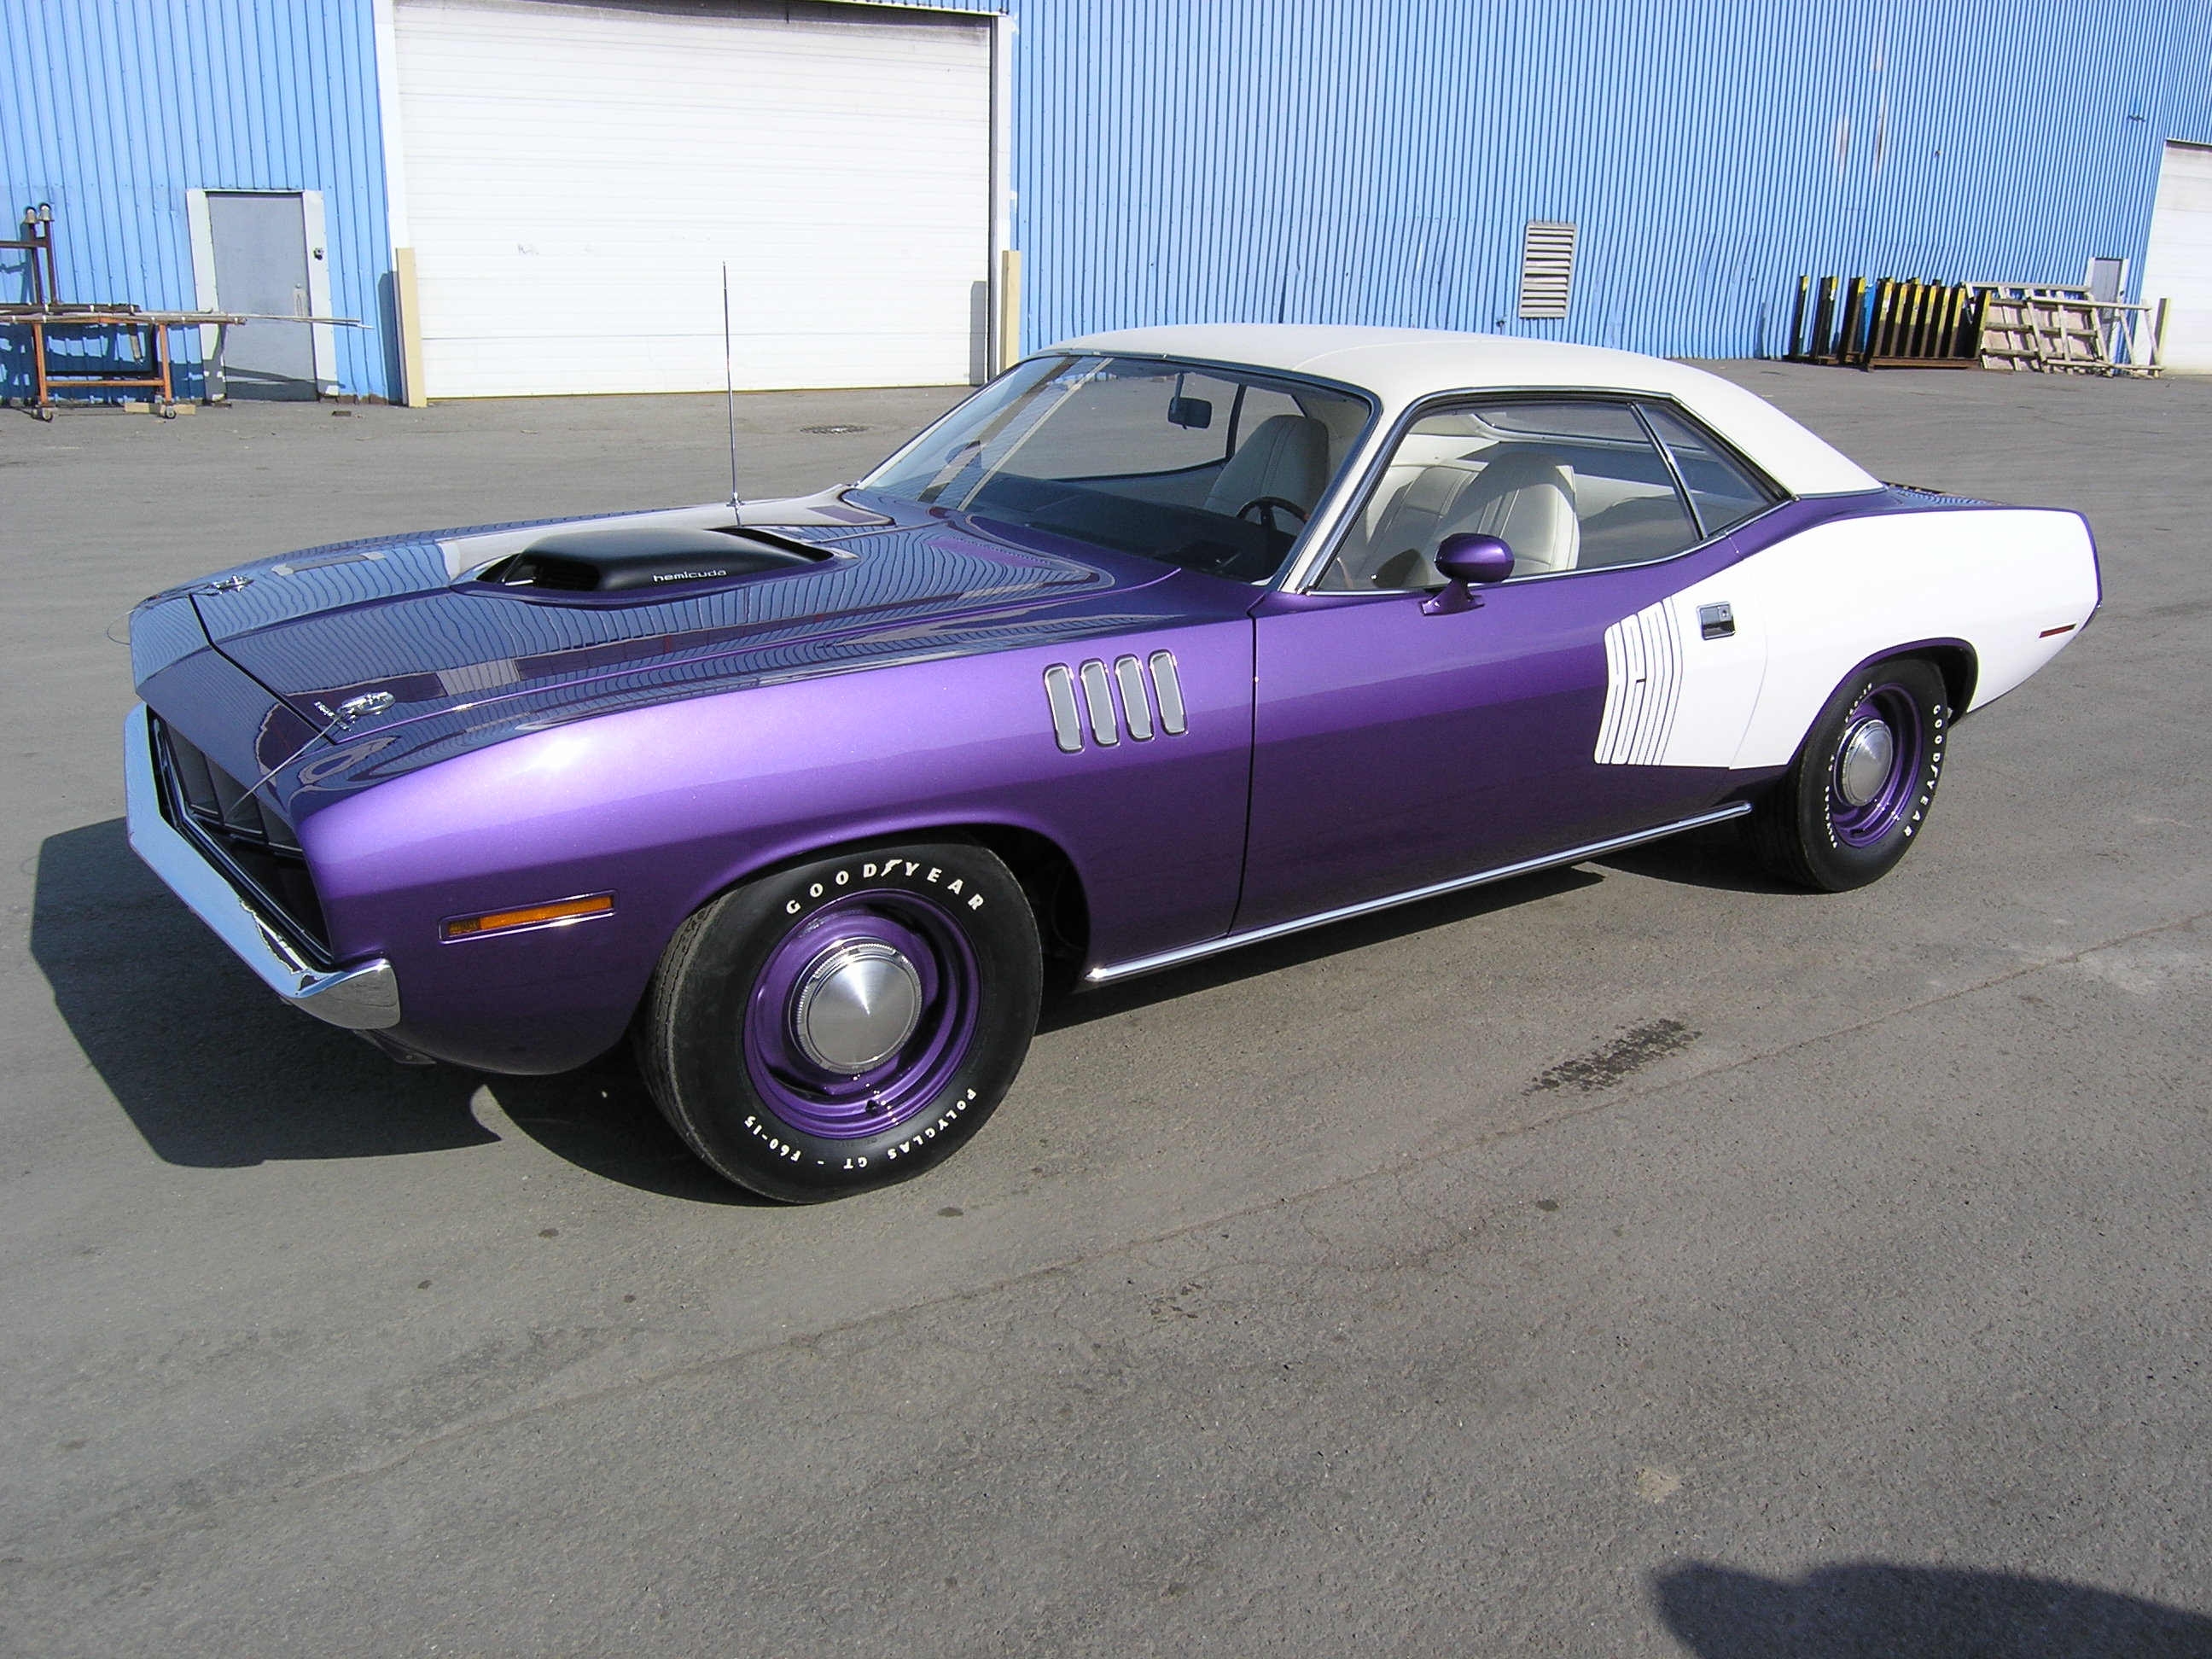 71 Hemi Cuda FC7 4 Speed FC7 Purple White Interior White Vynal